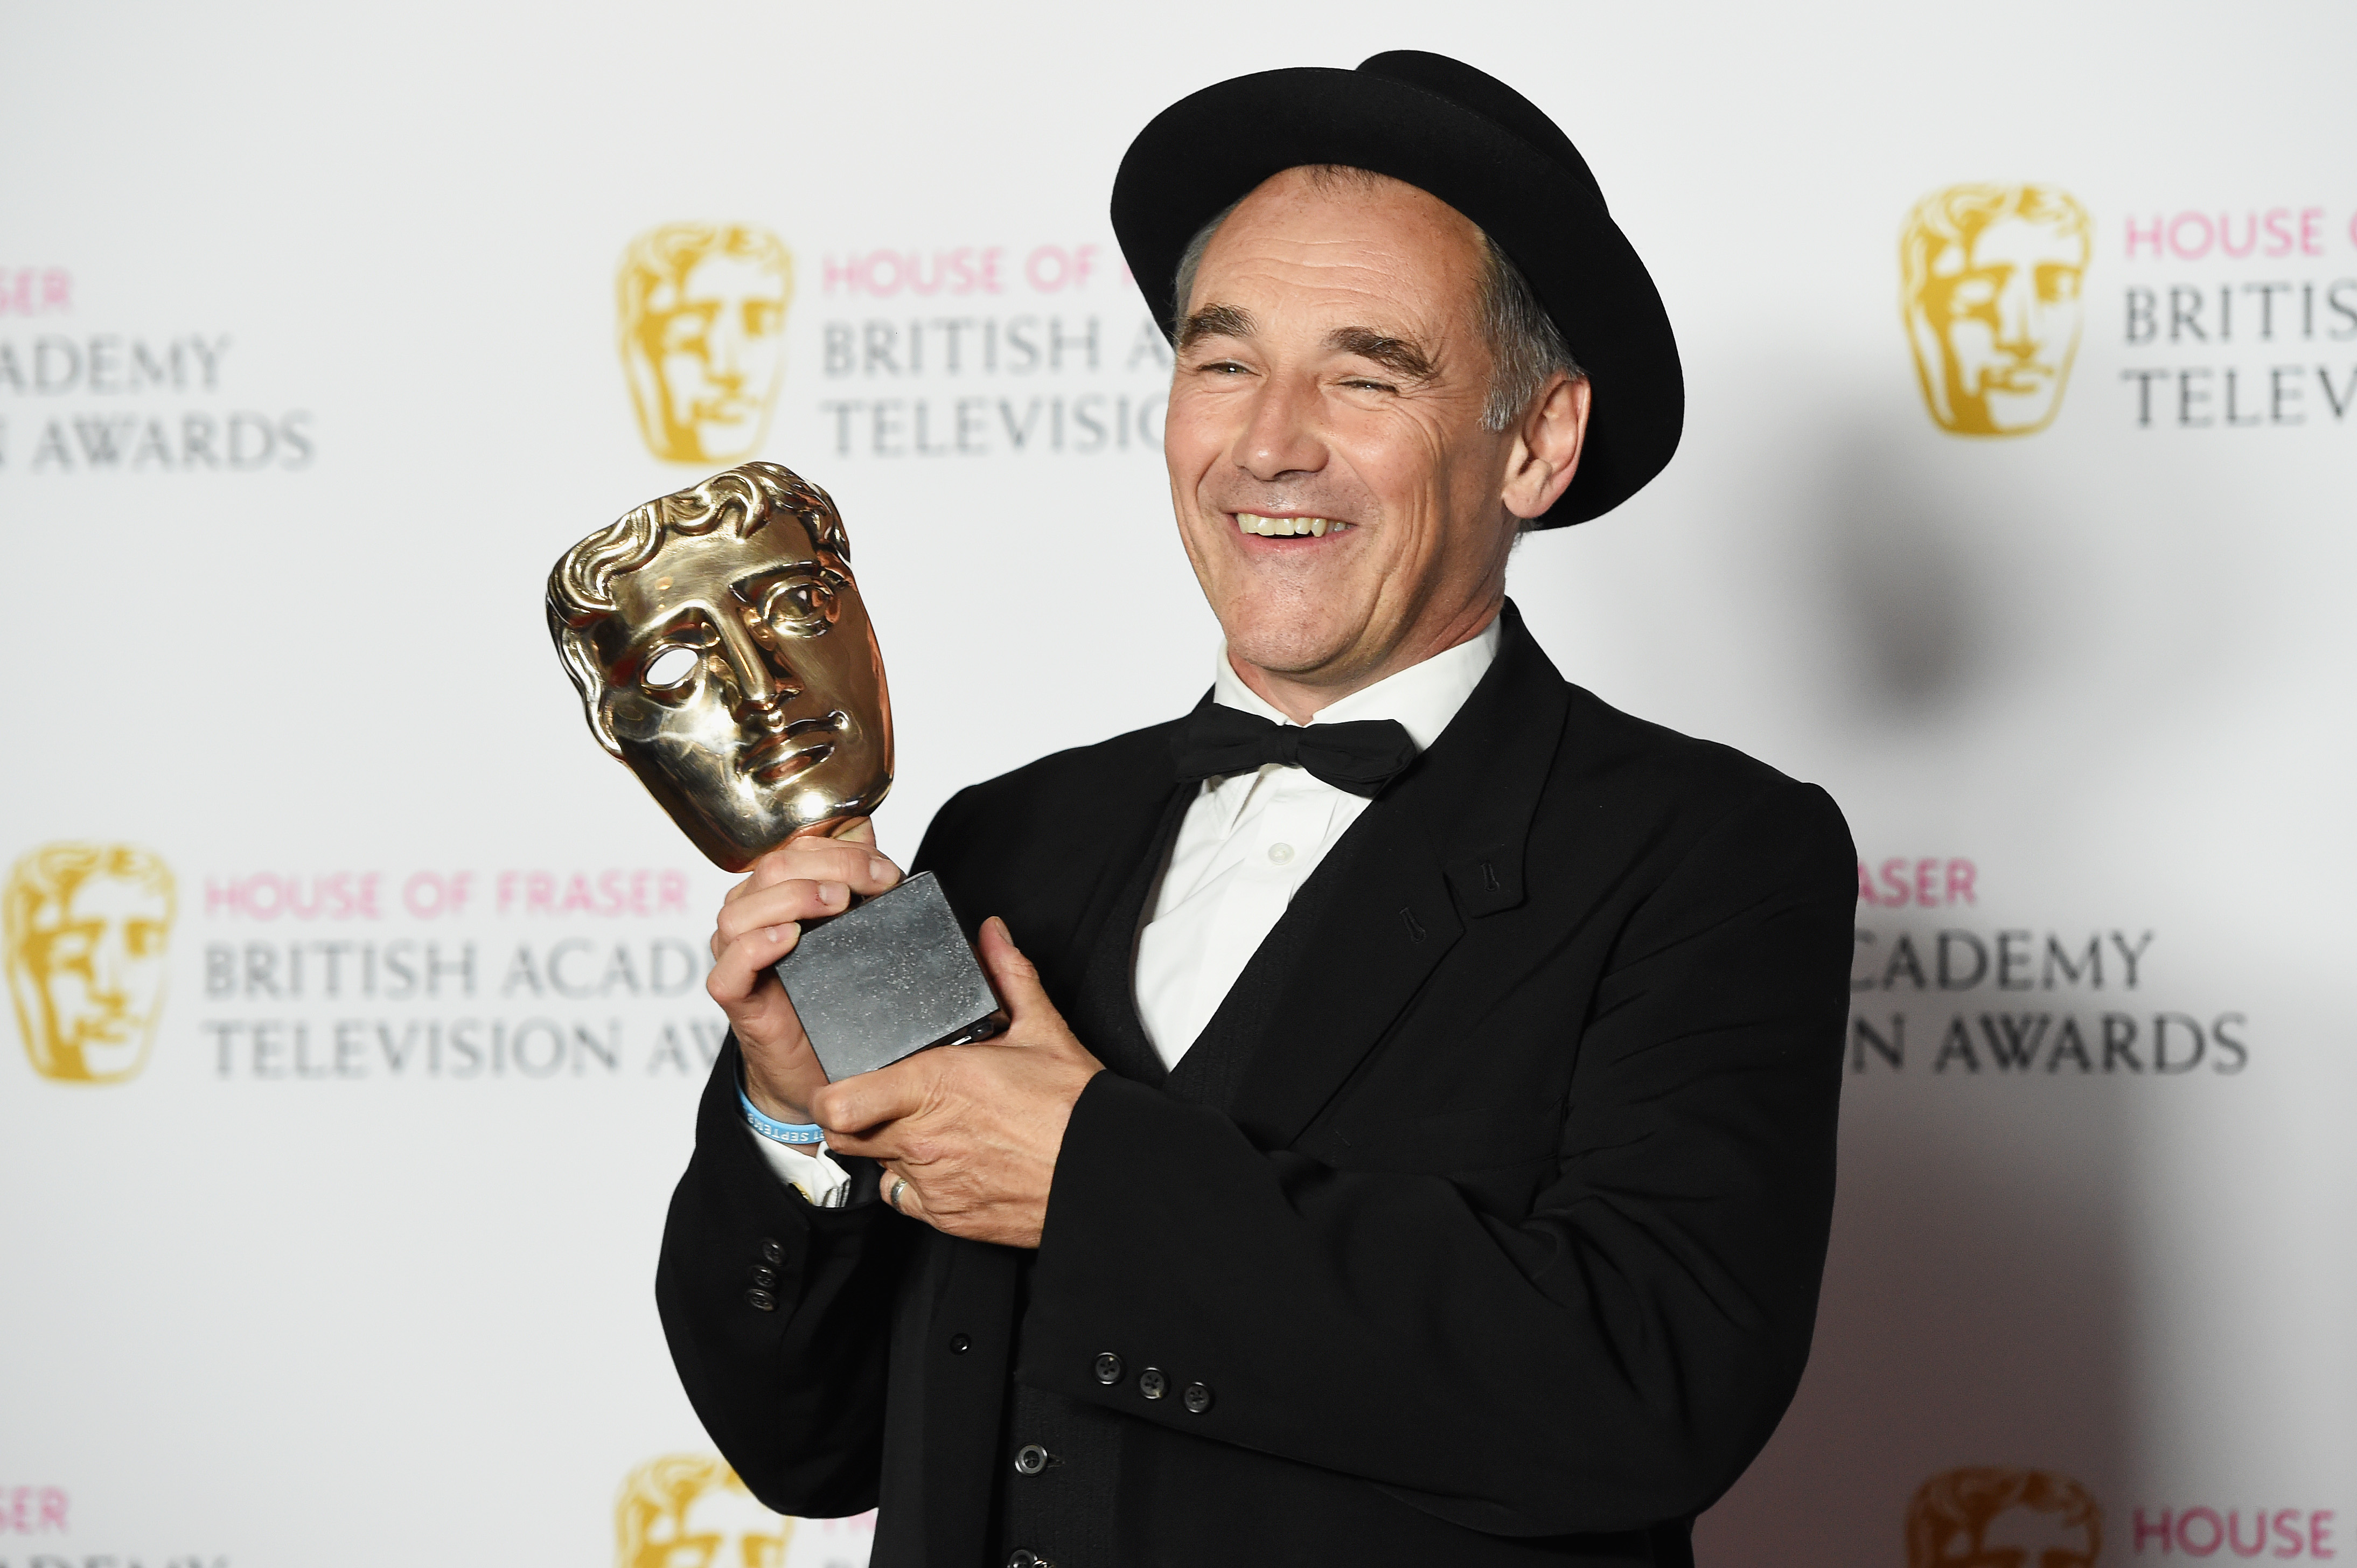 LONDON, ENGLAND - MAY 08: Mark Rylance, winner of the Leading Actor award for 'Wolf Hall', poses in the Winners room at the House Of Fraser British Academy Television Awards 2016 at the Royal Festival Hall on May 8, 2016 in London, England. (Photo by Stuart C. Wilson/Getty Images)